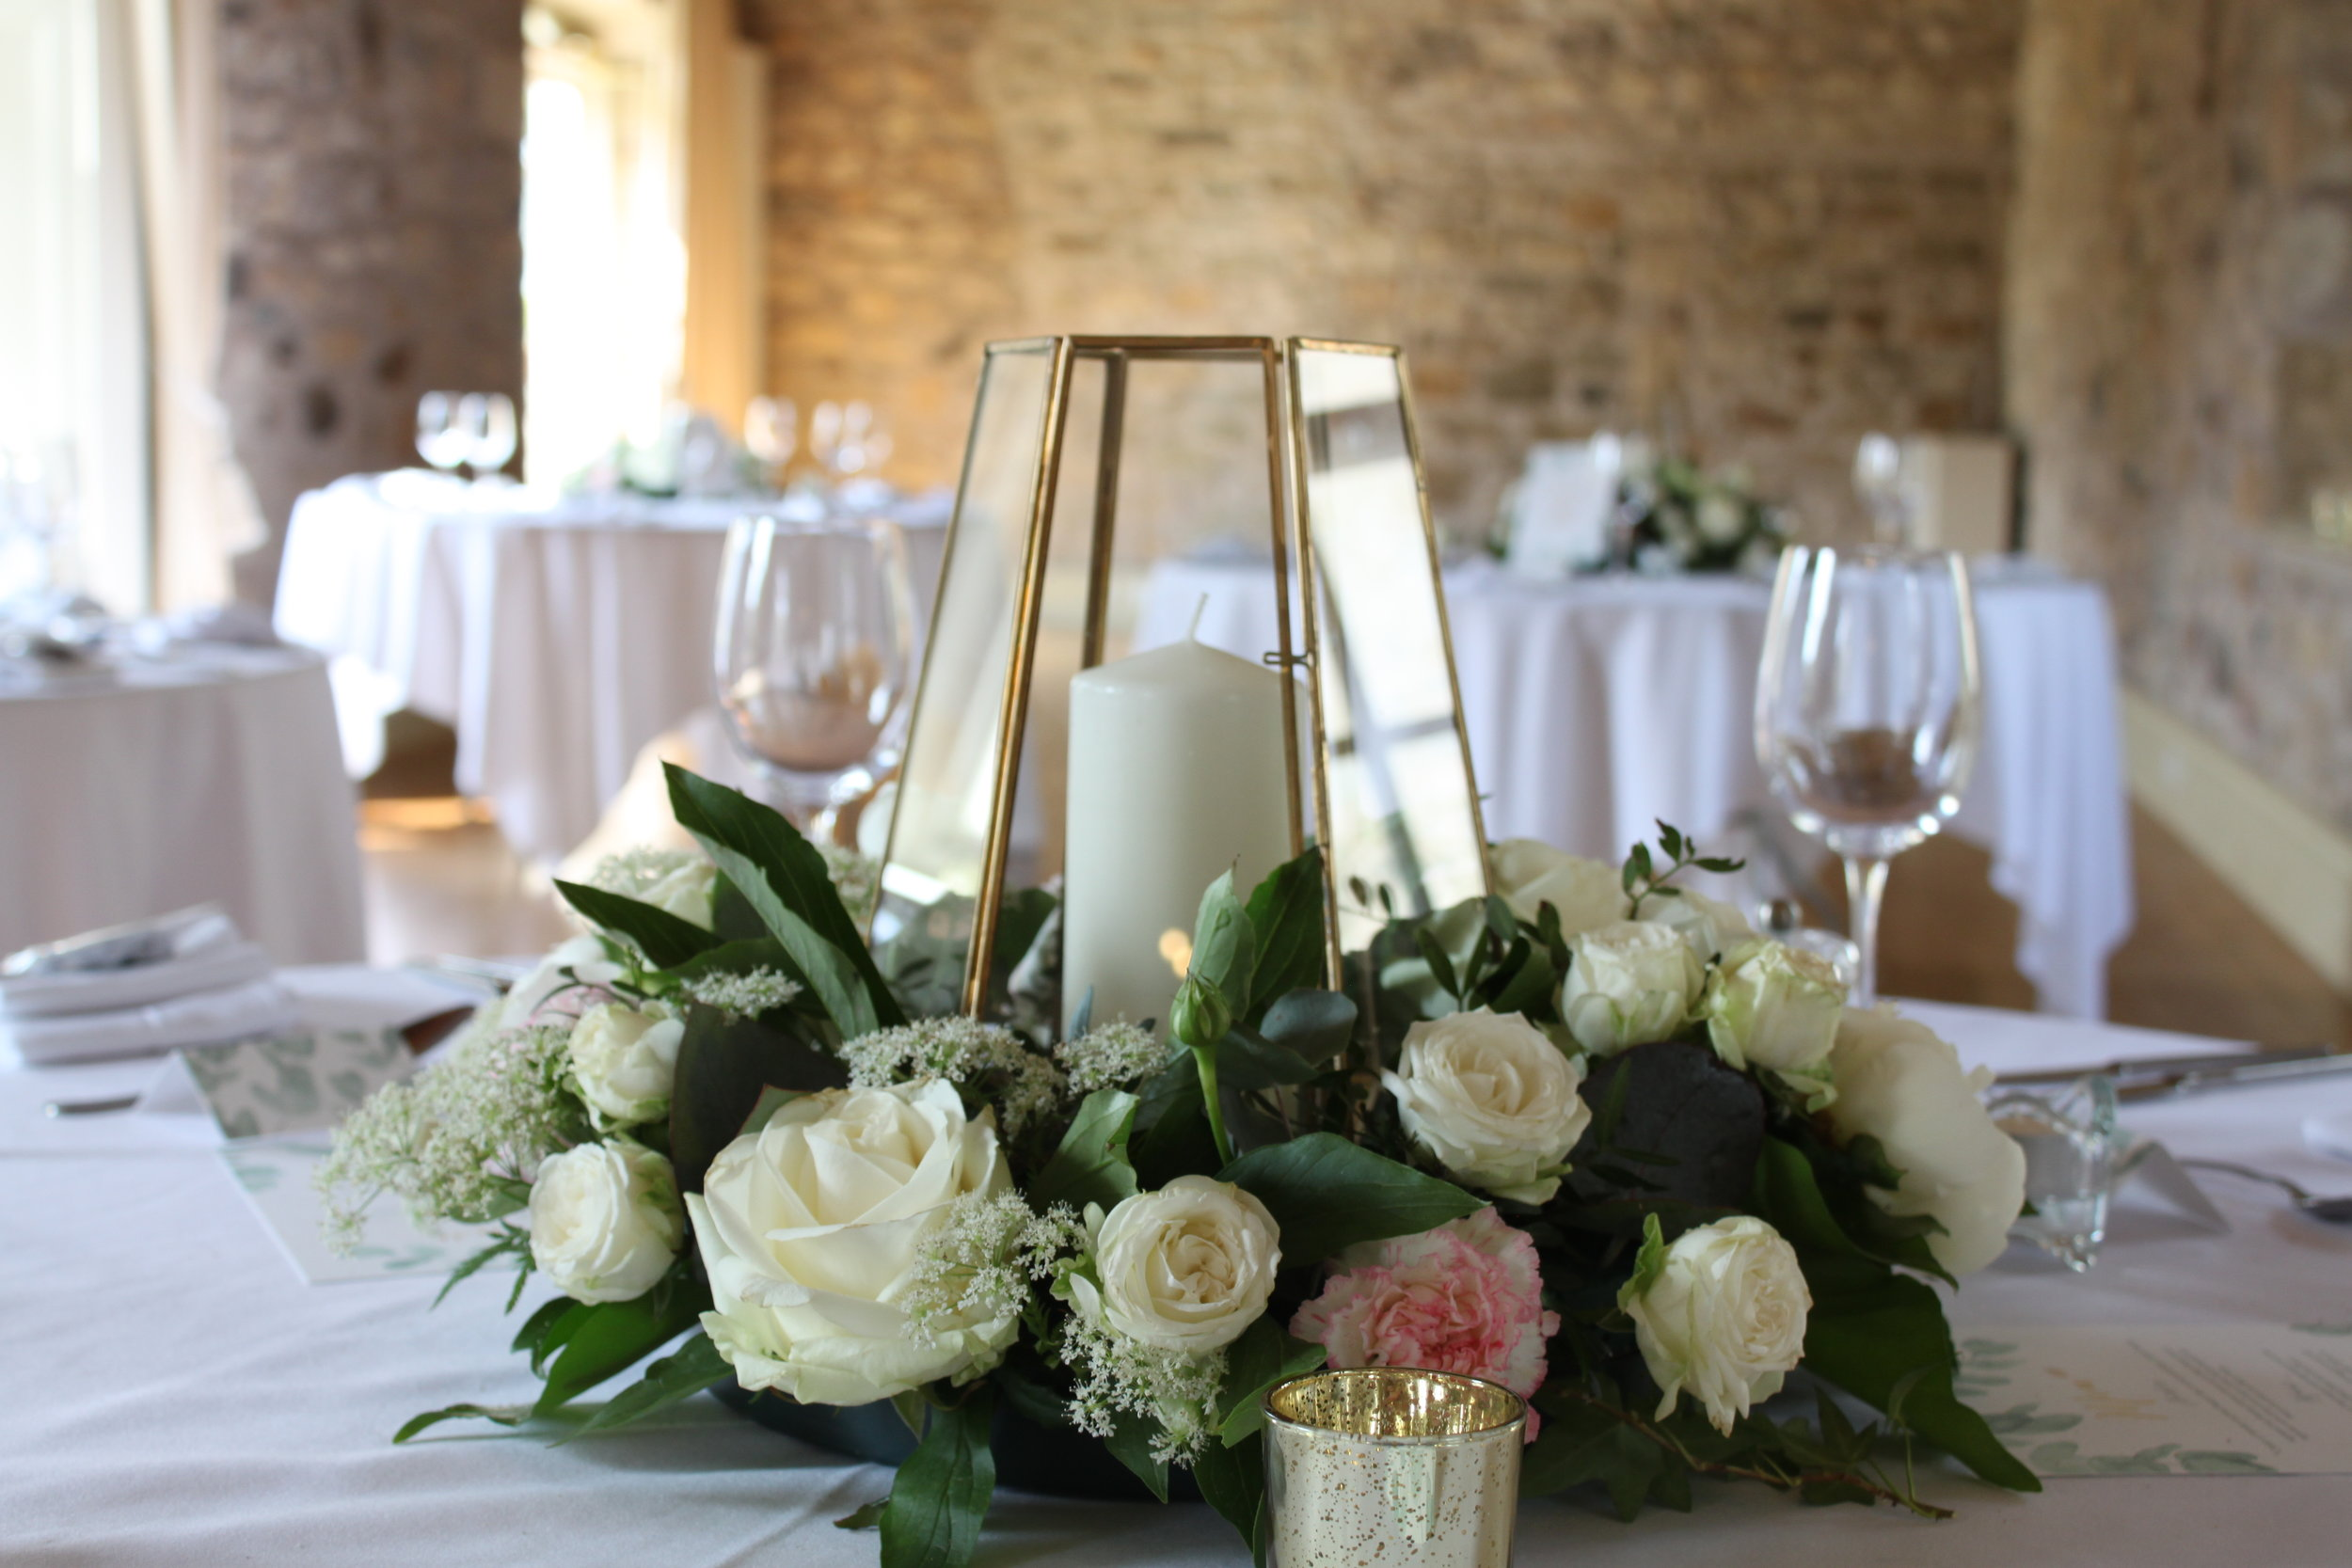 Floral Range - Our in house florists provide a stunning range of fresh floral centrepieces to cater for all budgets. With our huge range of vases we can provide a floral display to suit any style or theme.From only £20 each.